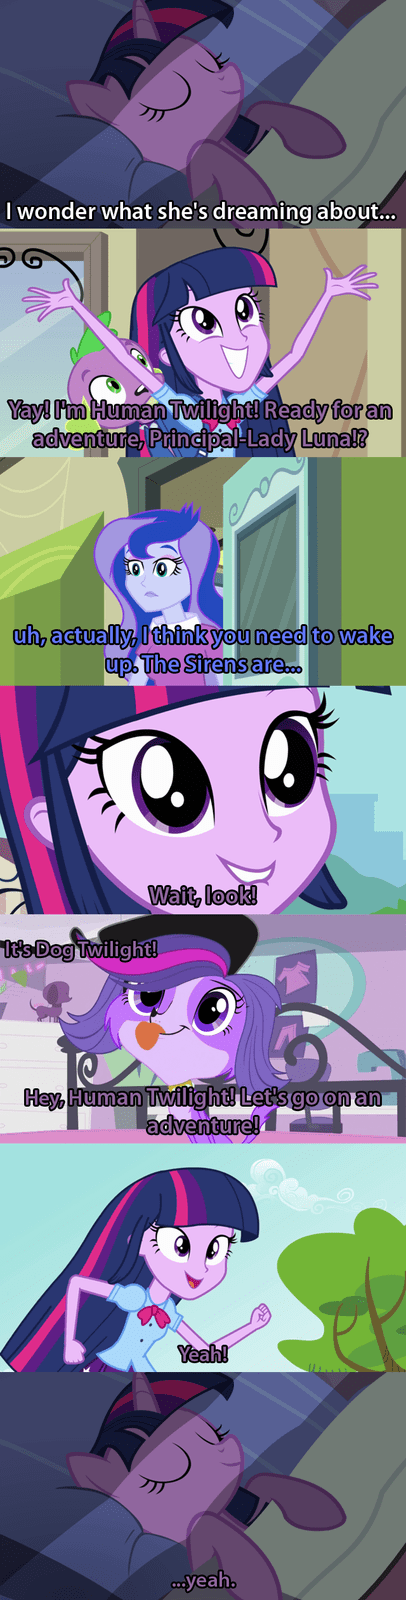 equestria girls,twilight sparkle,dreams